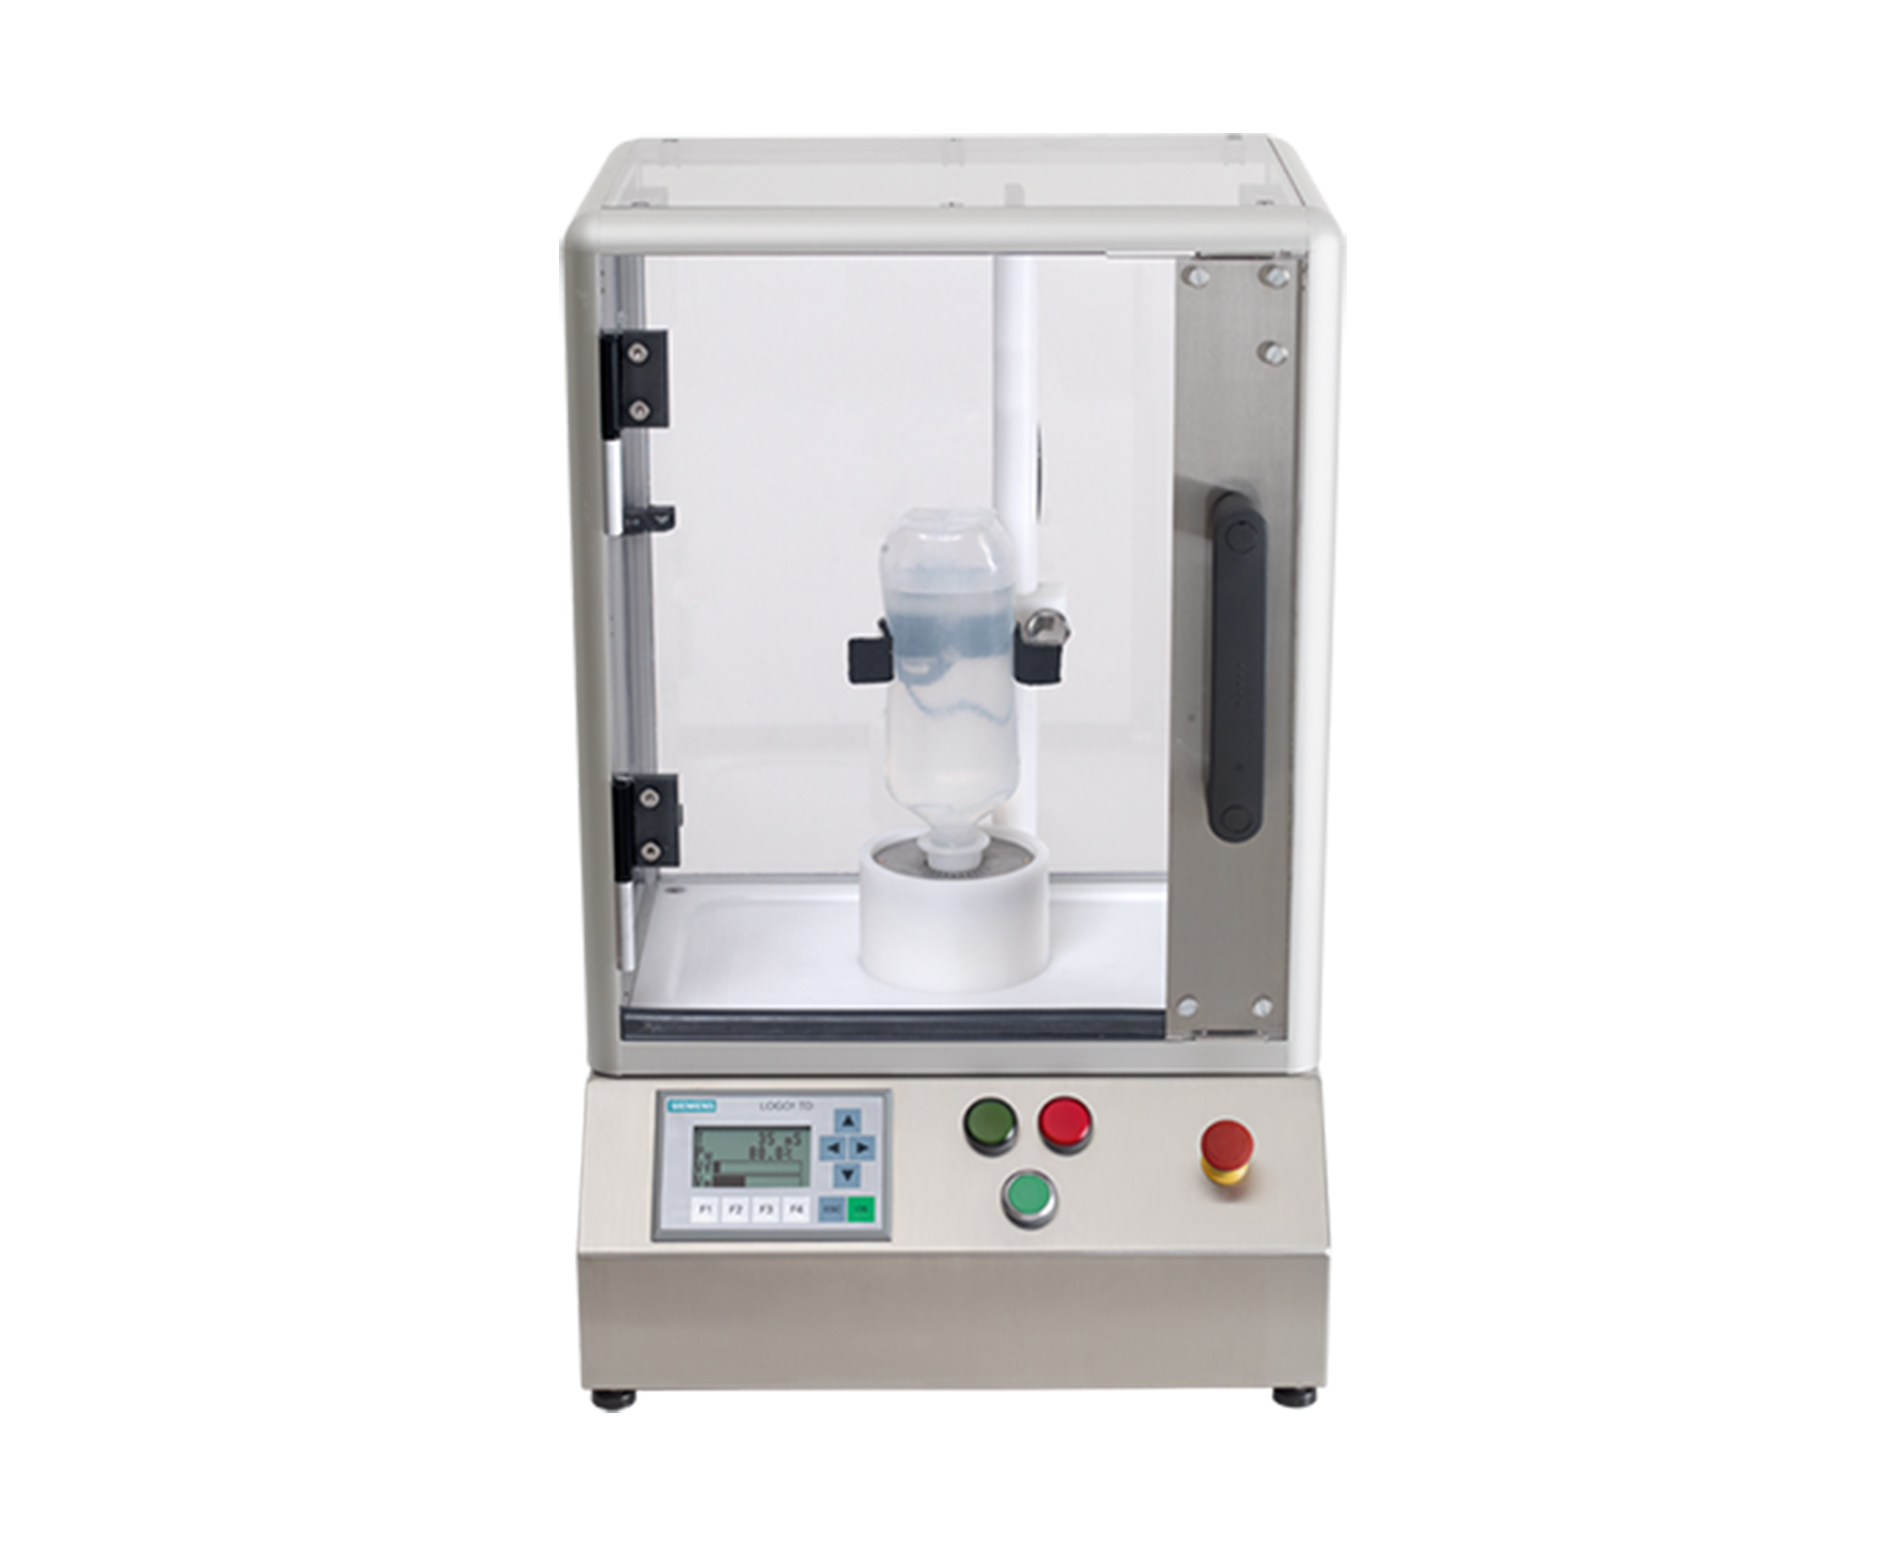 EASYTS PHARMA - Inspection Systems